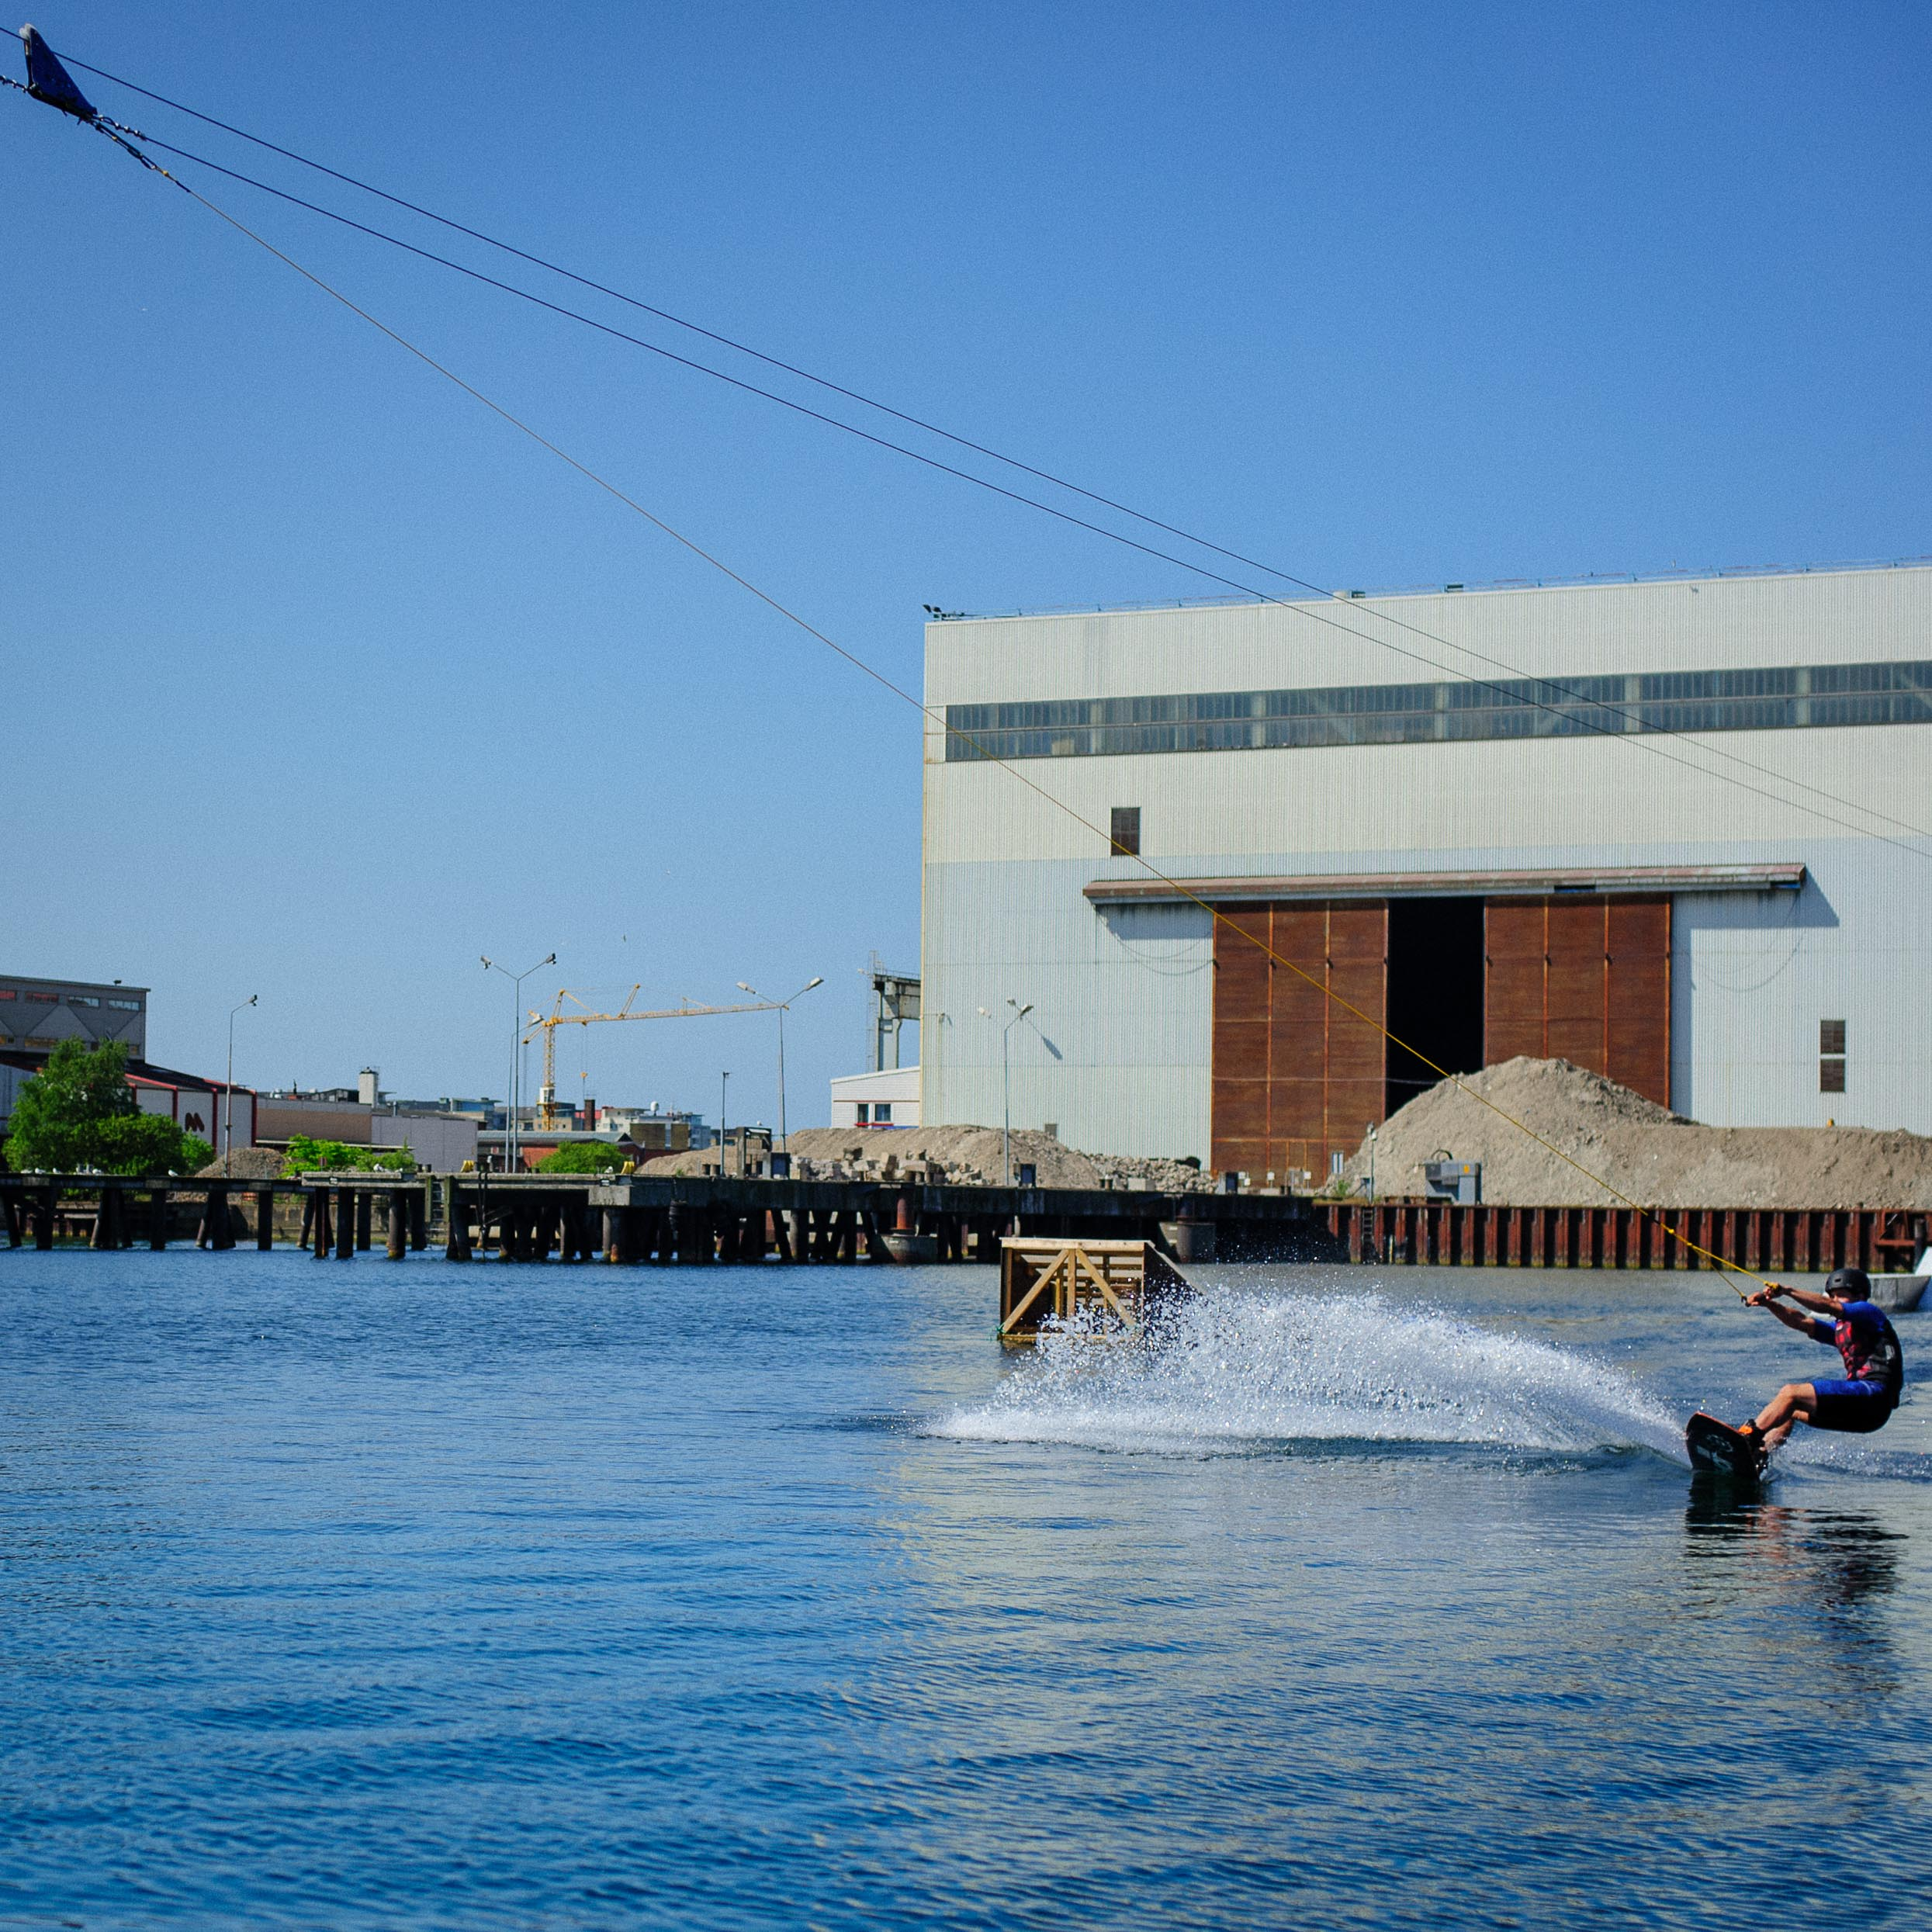 Cable wakeboard in Malmo 2